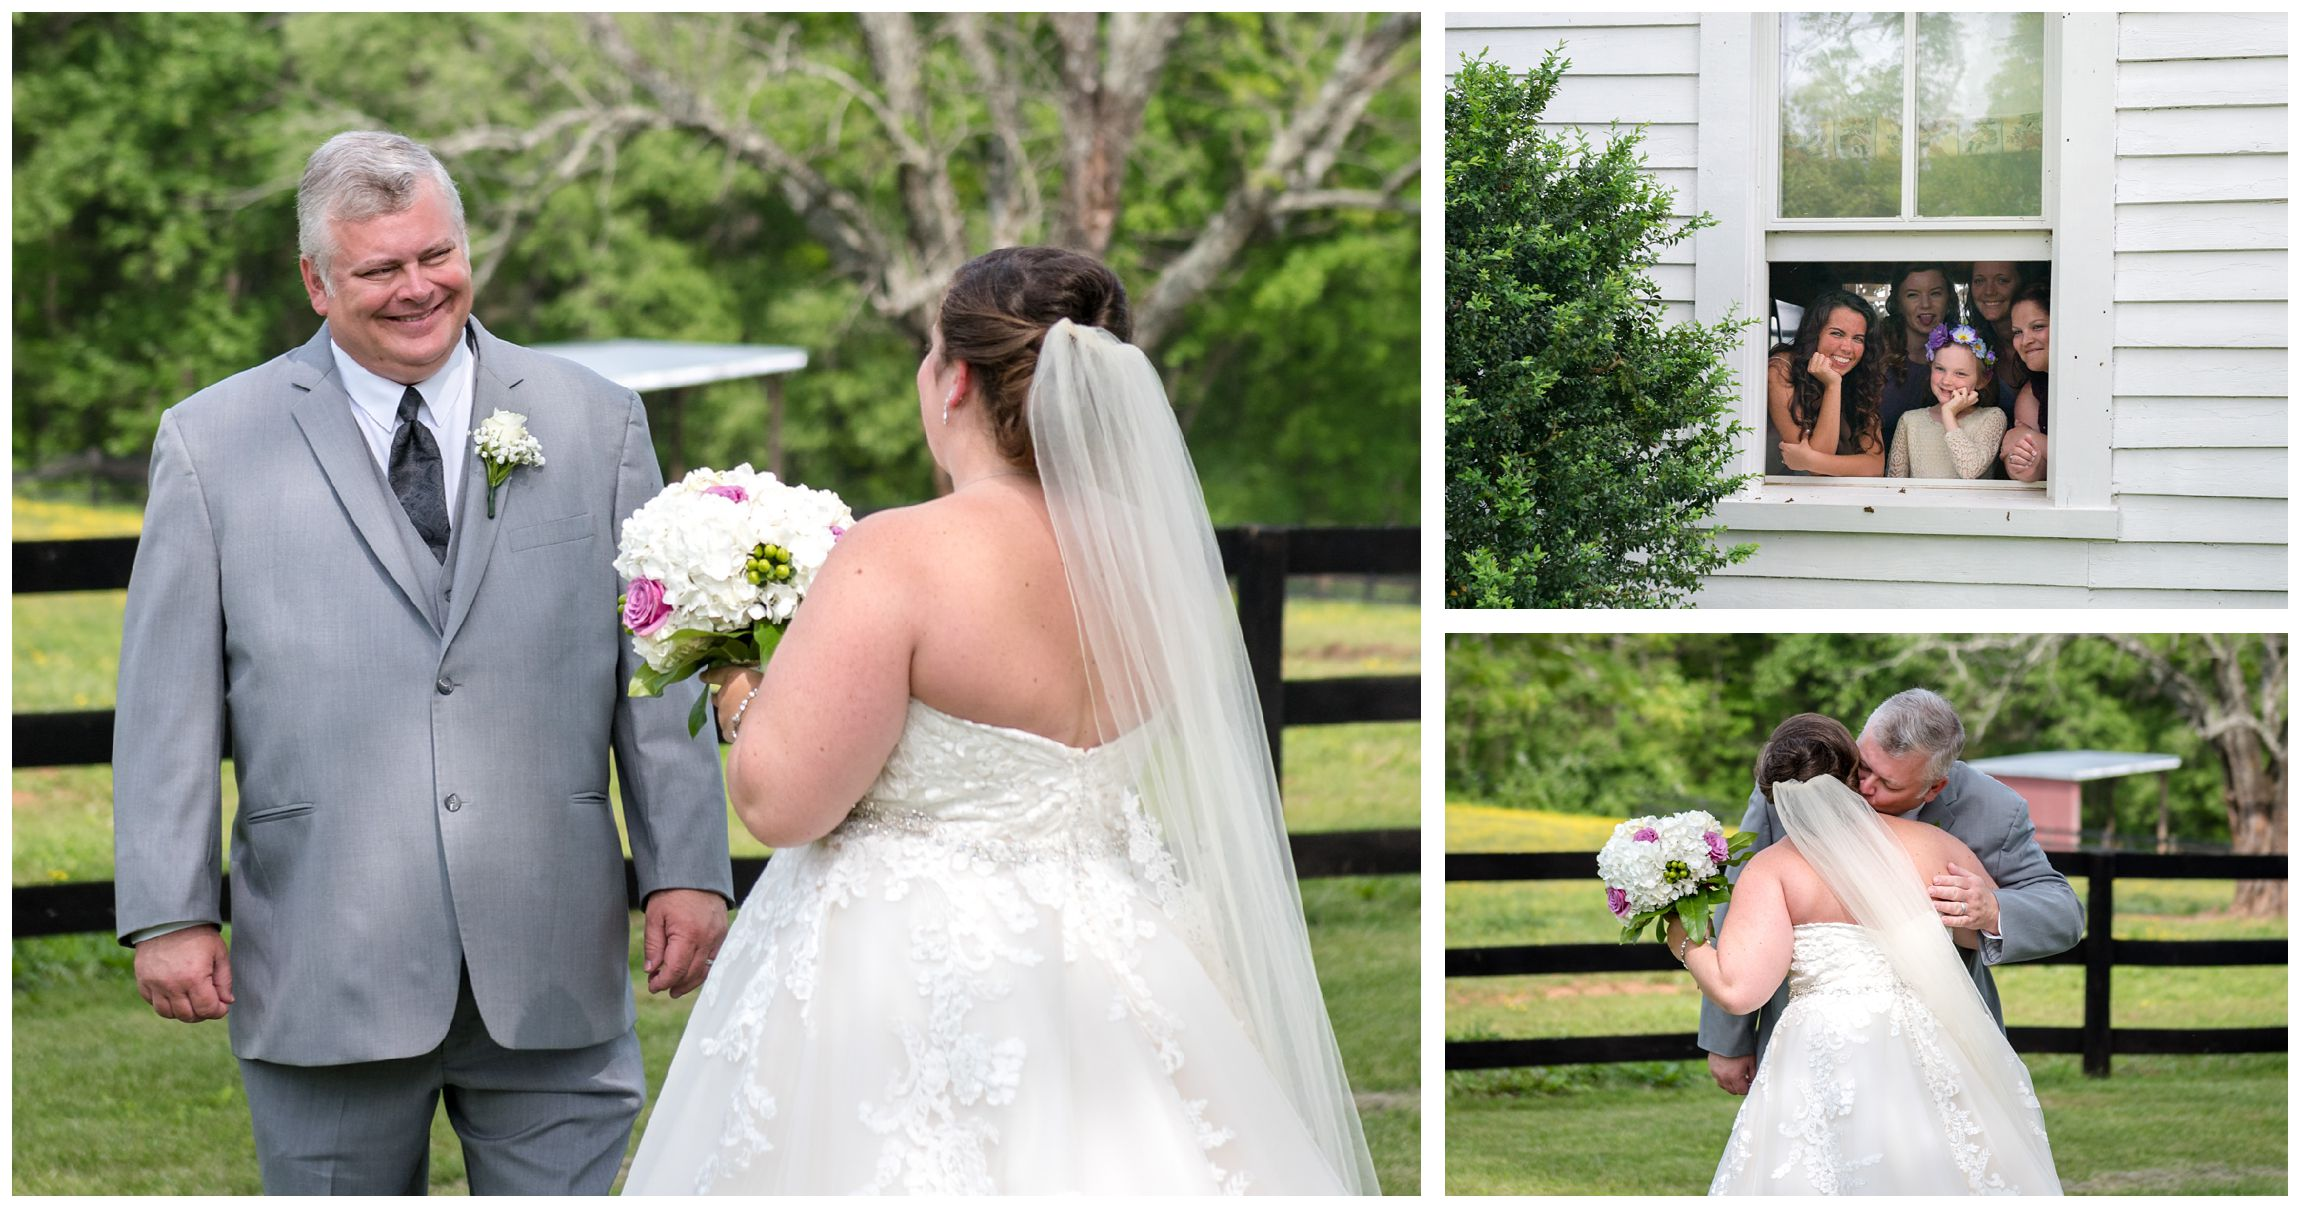 bride and dad share a first look moment before wedding ceremony at Wolftrap Farm